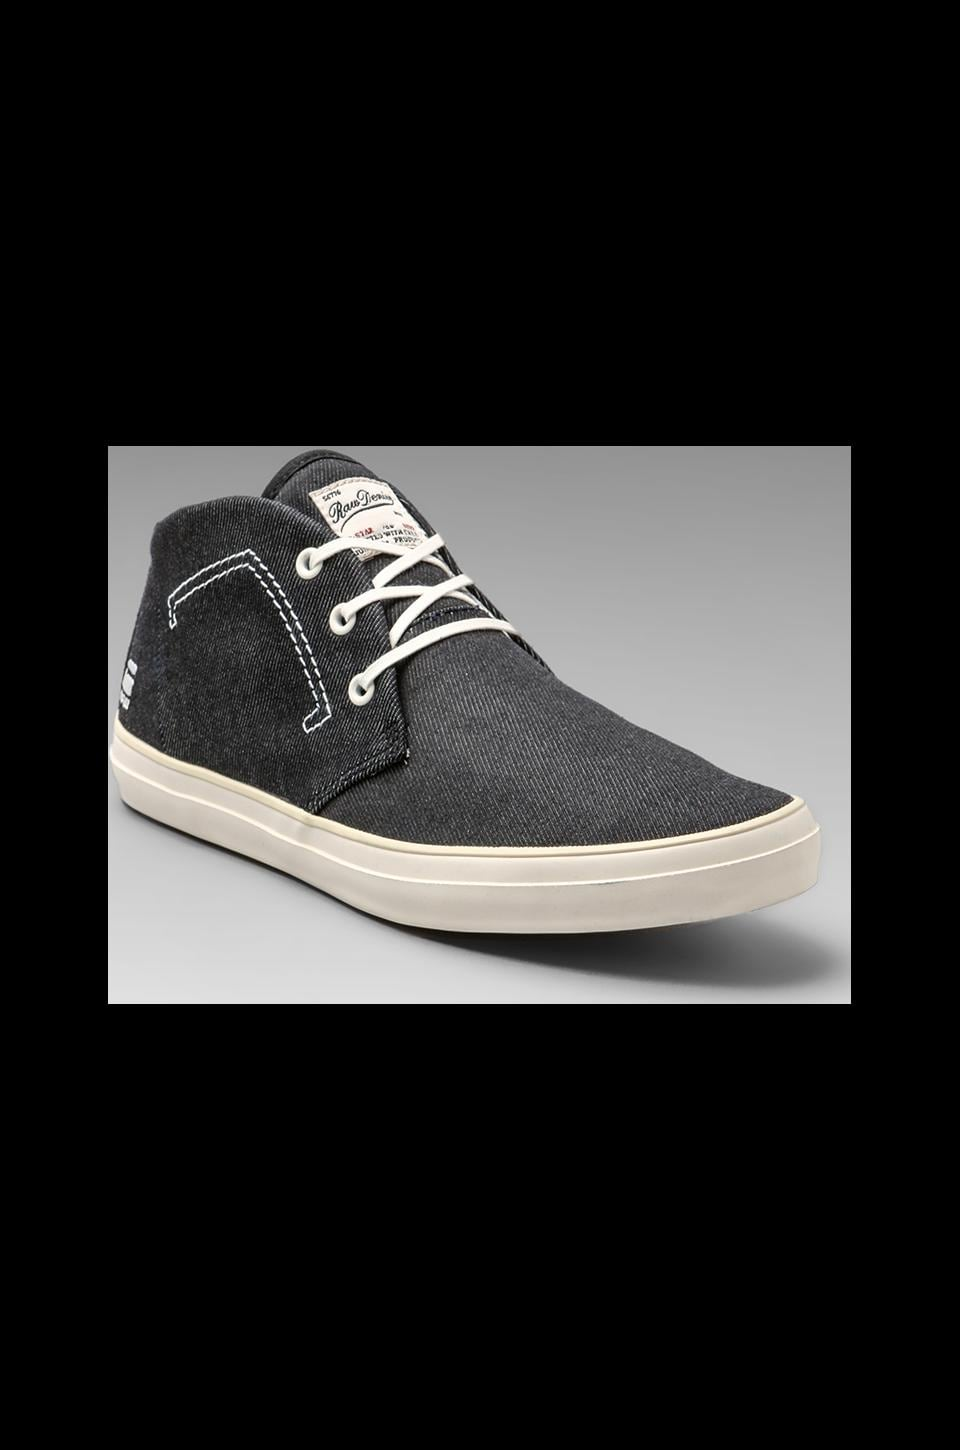 G-Star Stun Scupper Denim in Black Denim/Black Mesh